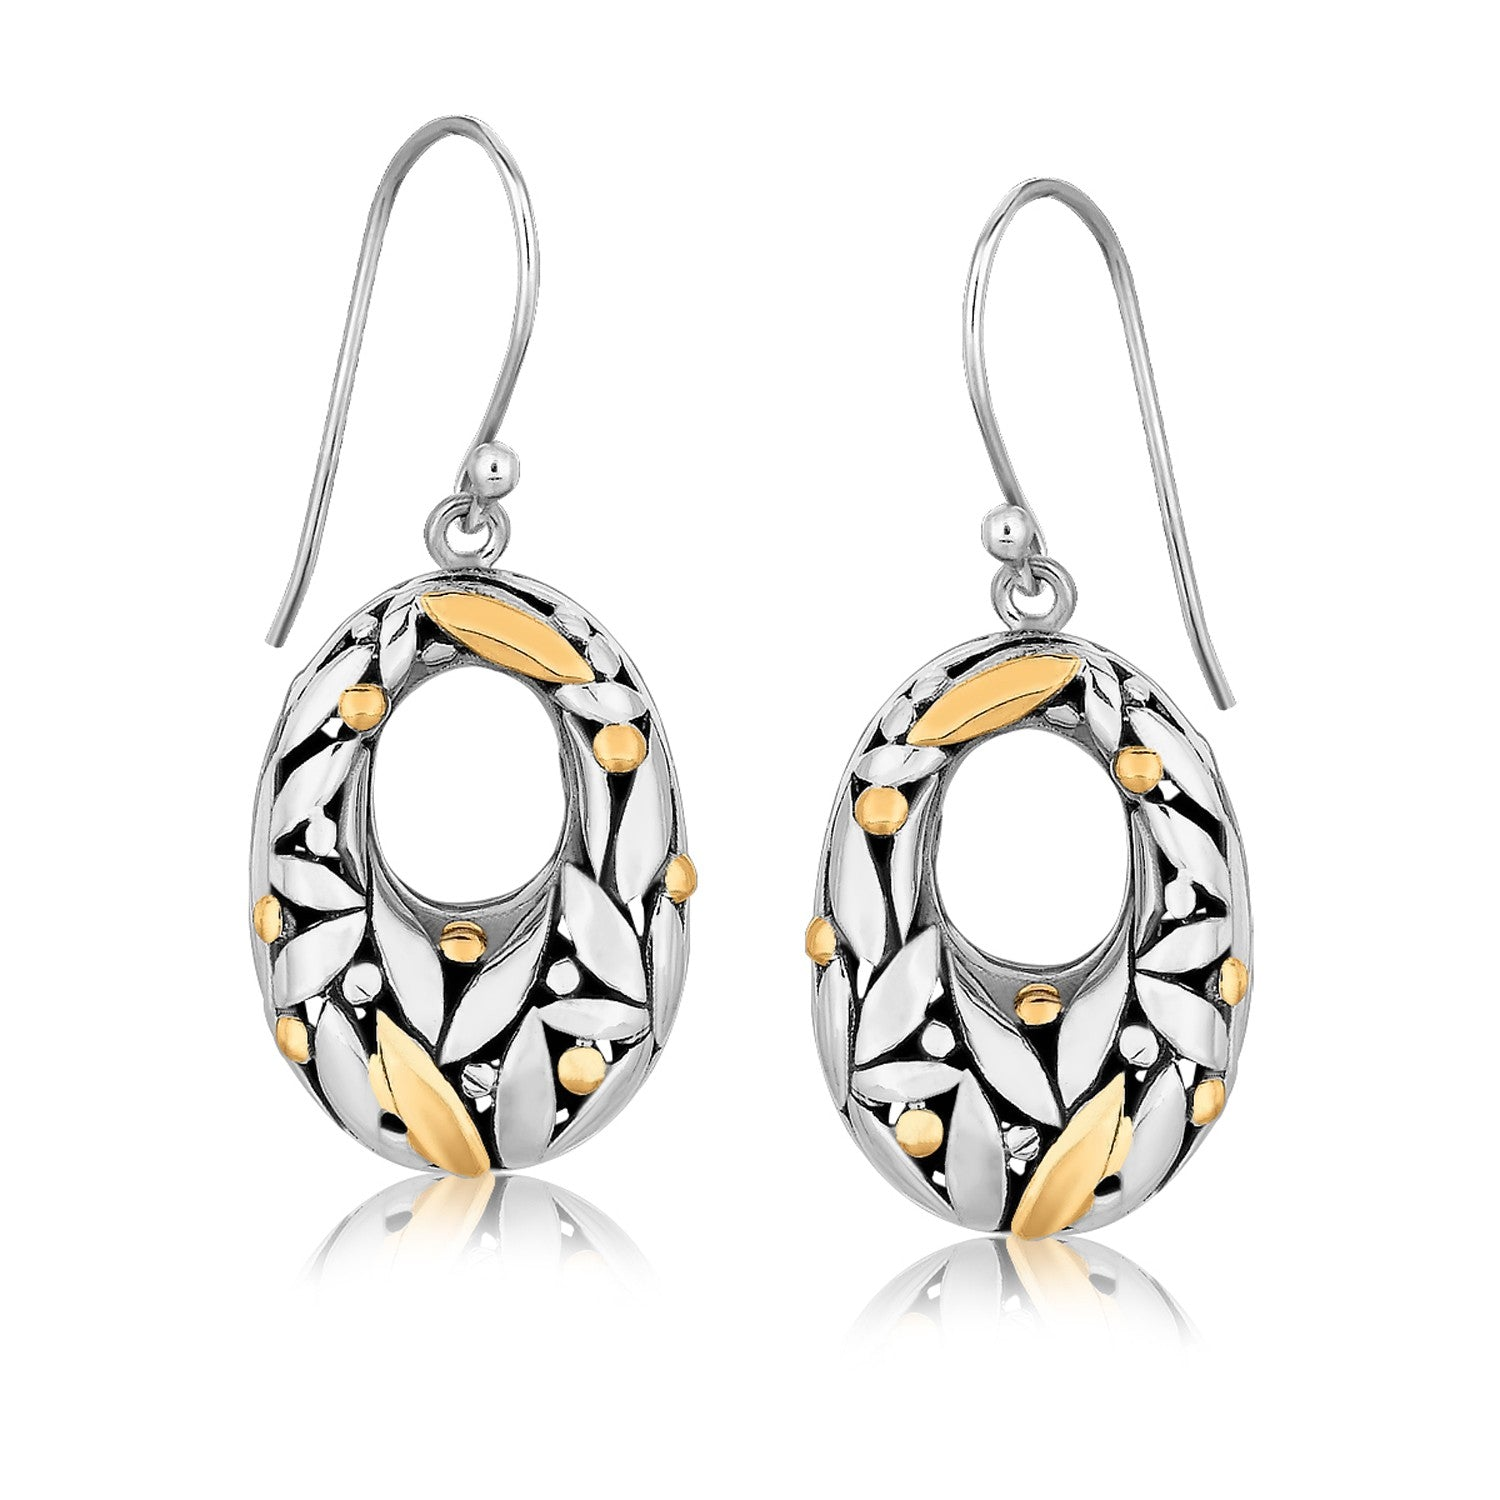 18K Yellow Gold and Sterling Silver Graduated Drop Earrings with Leaf Motifs